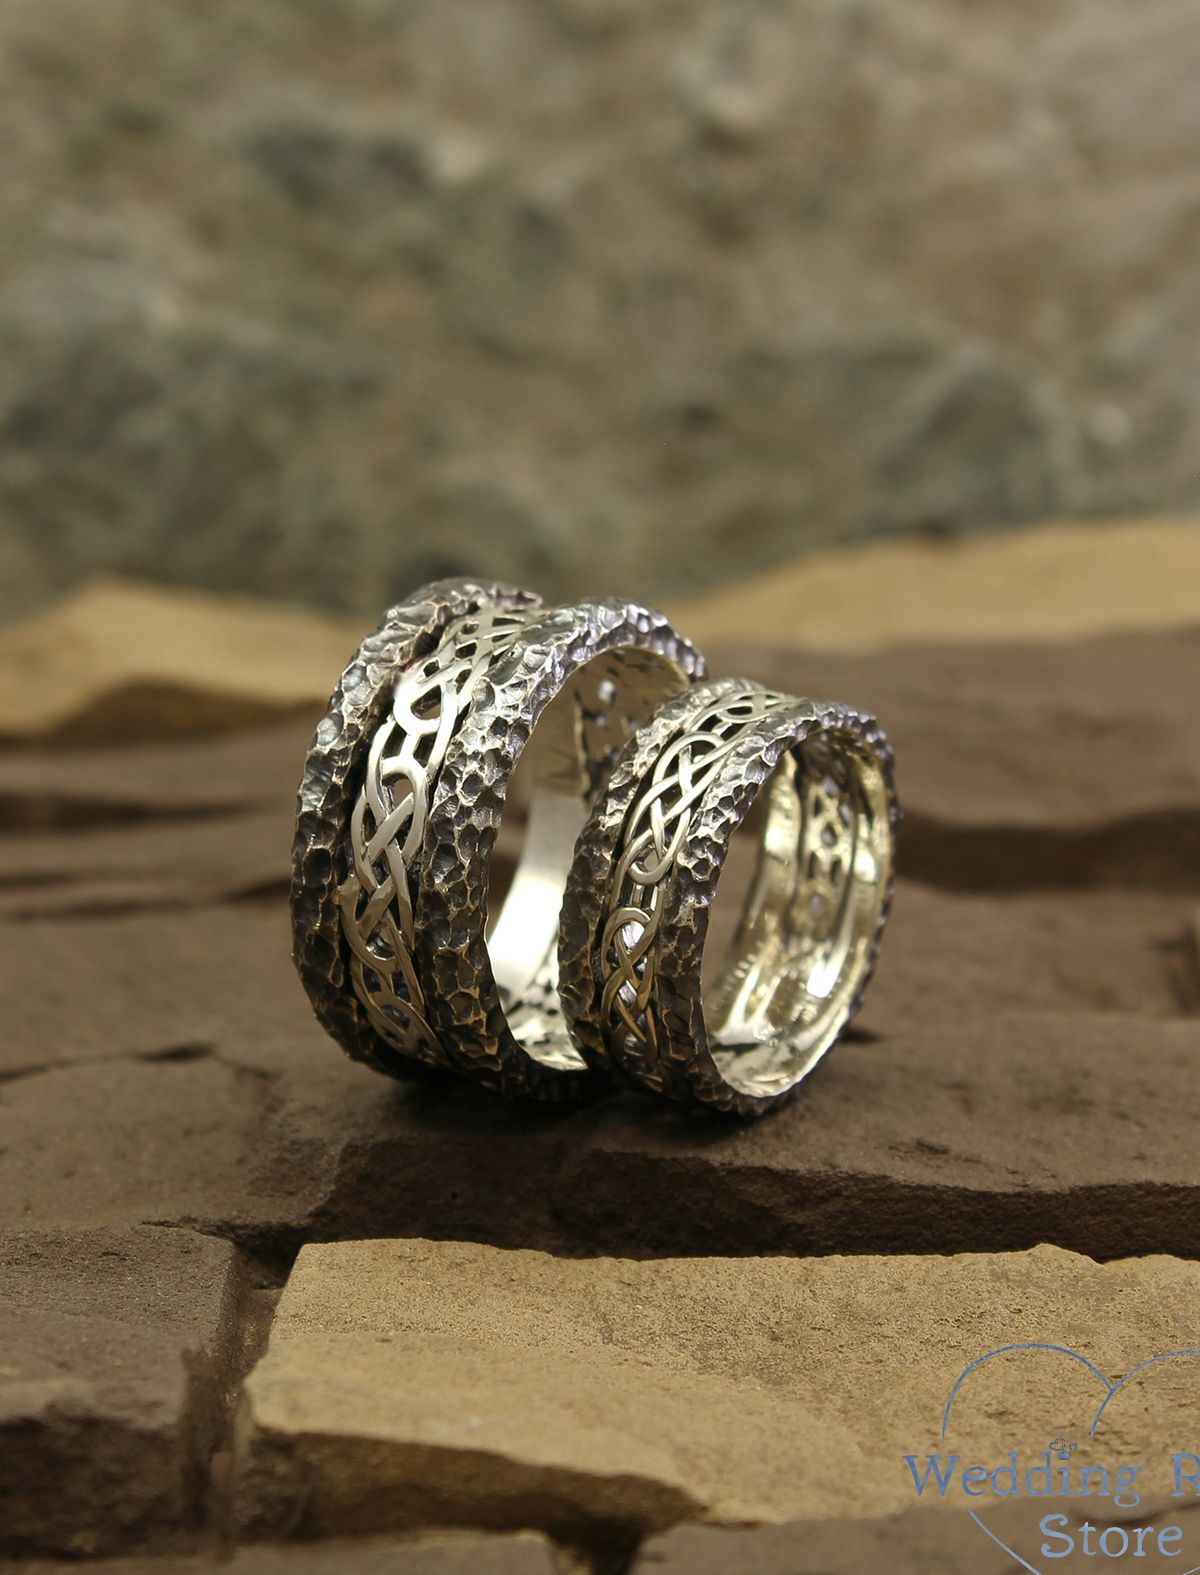 Men's hammered wedding rings in silver by